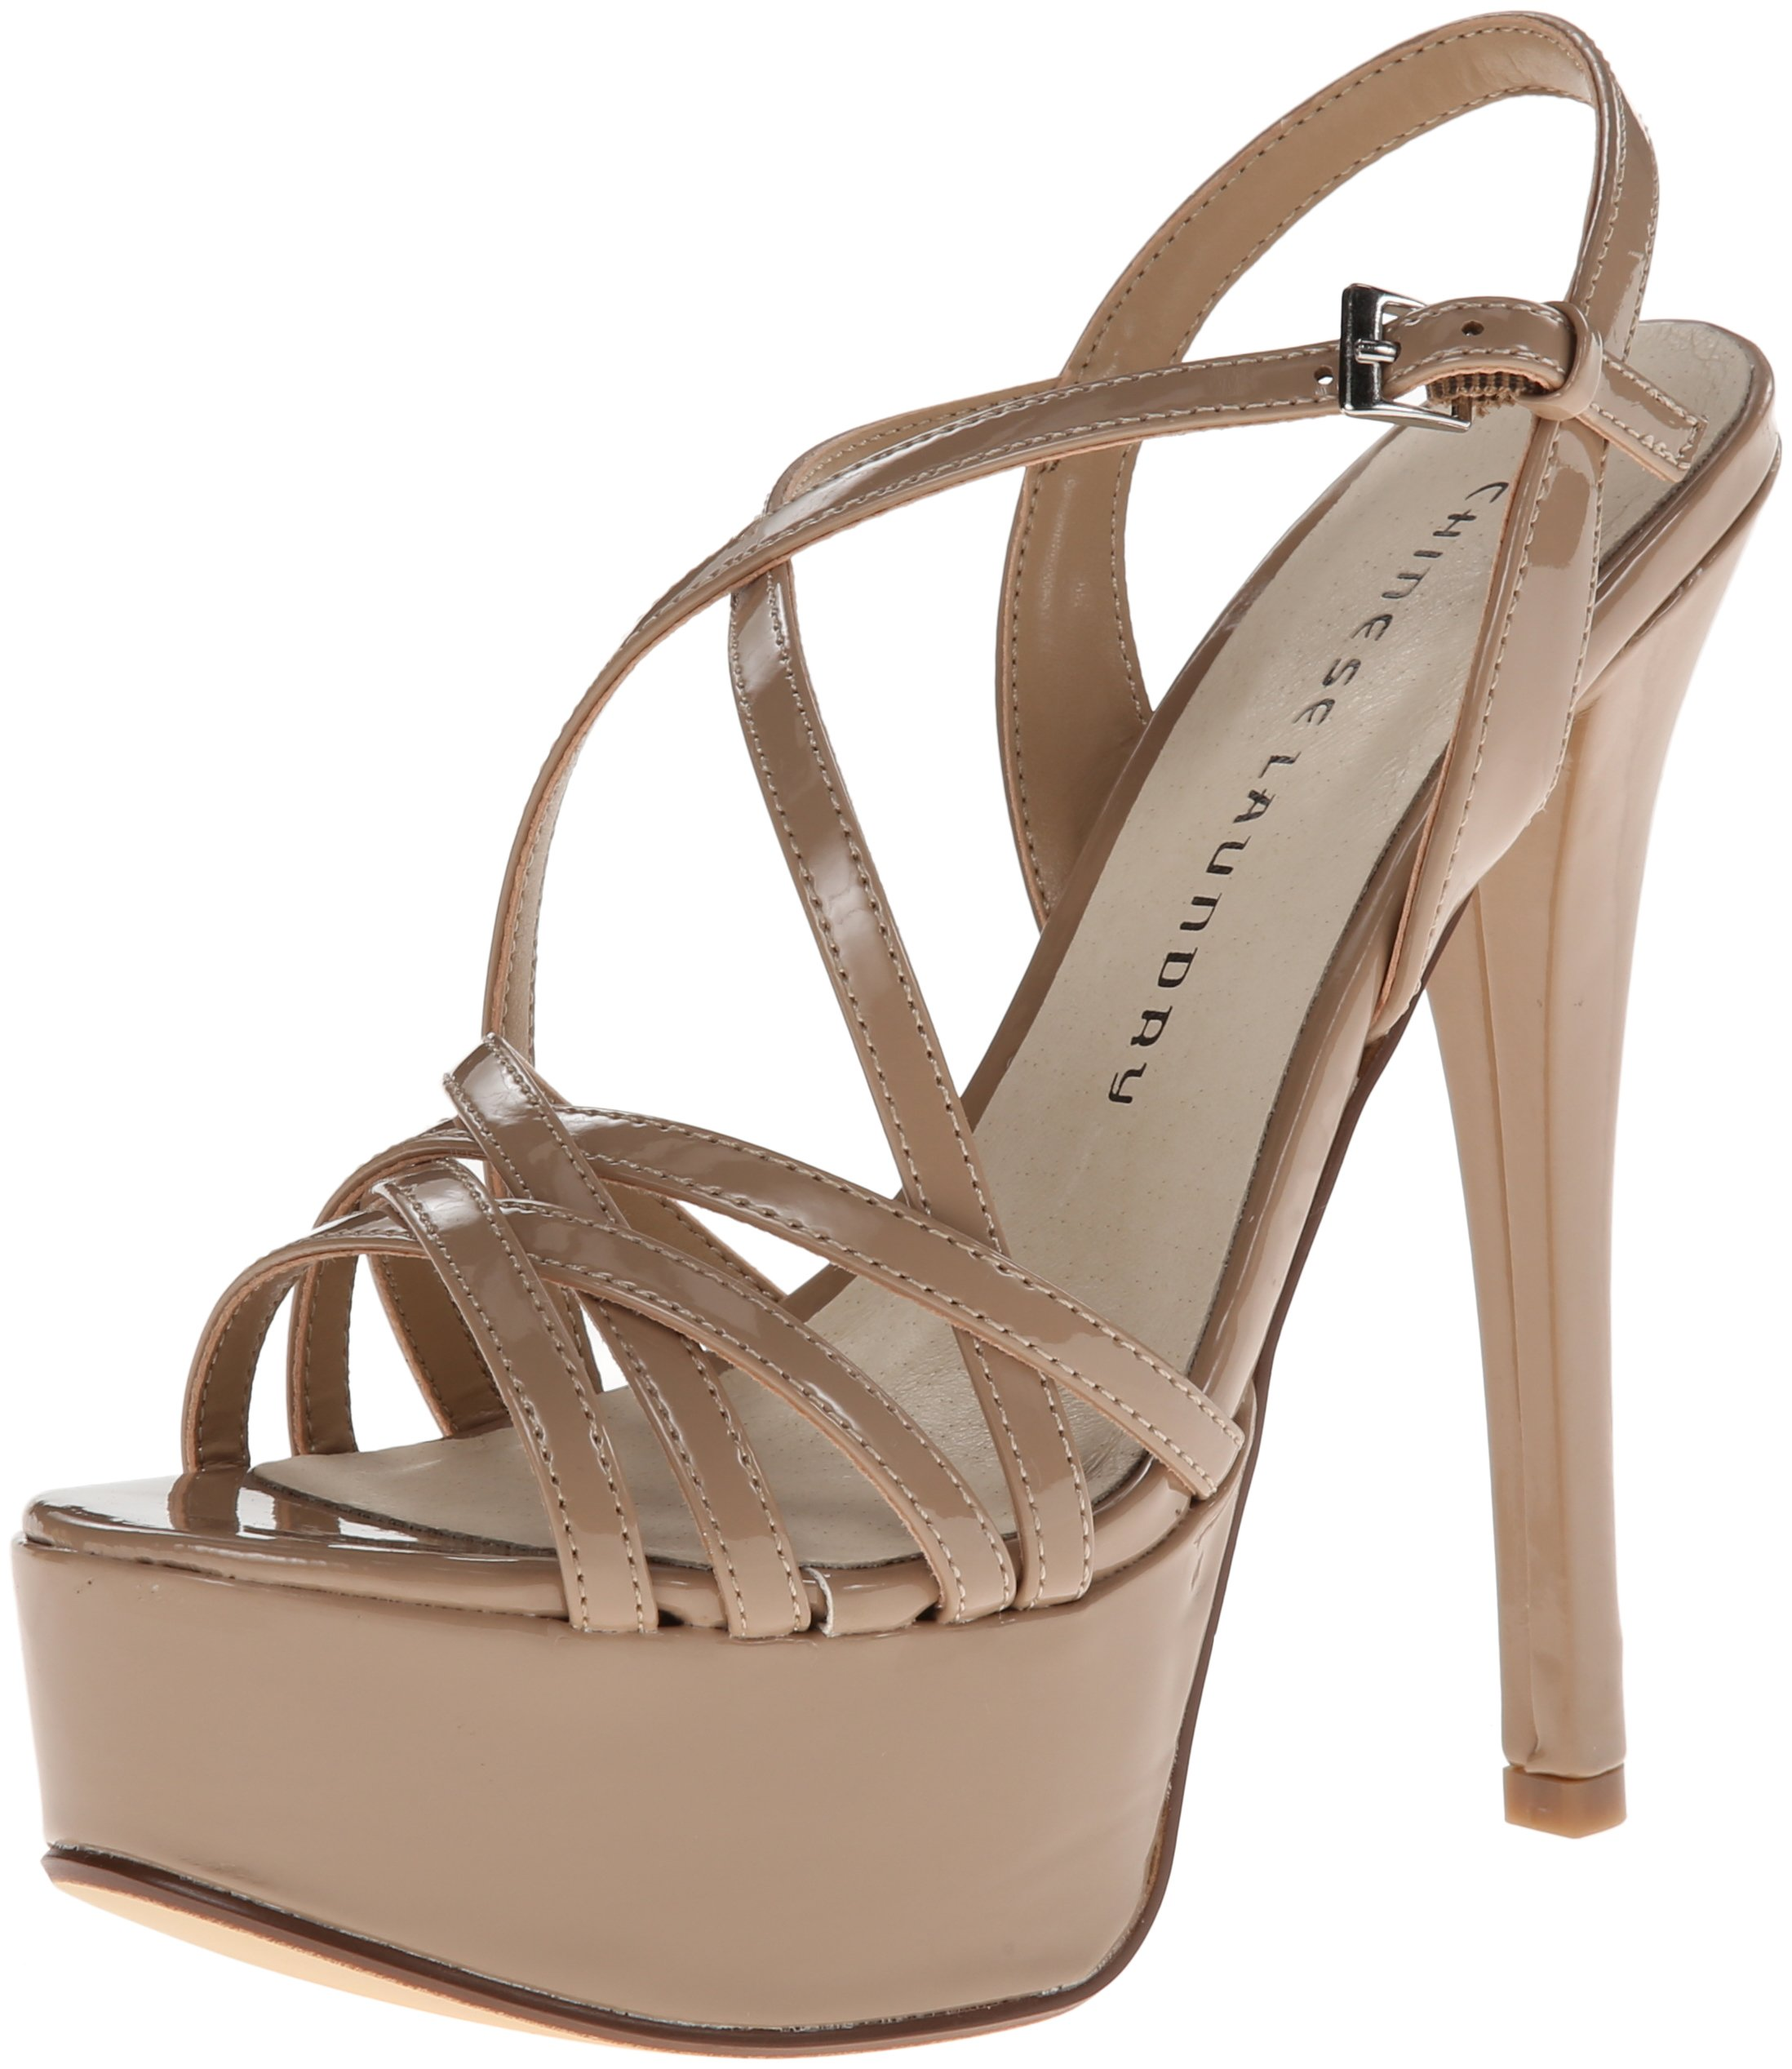 Chinese Laundry Women's Teaser Platform Dress Sandal, Nude Patent, 8 M US by Chinese Laundry